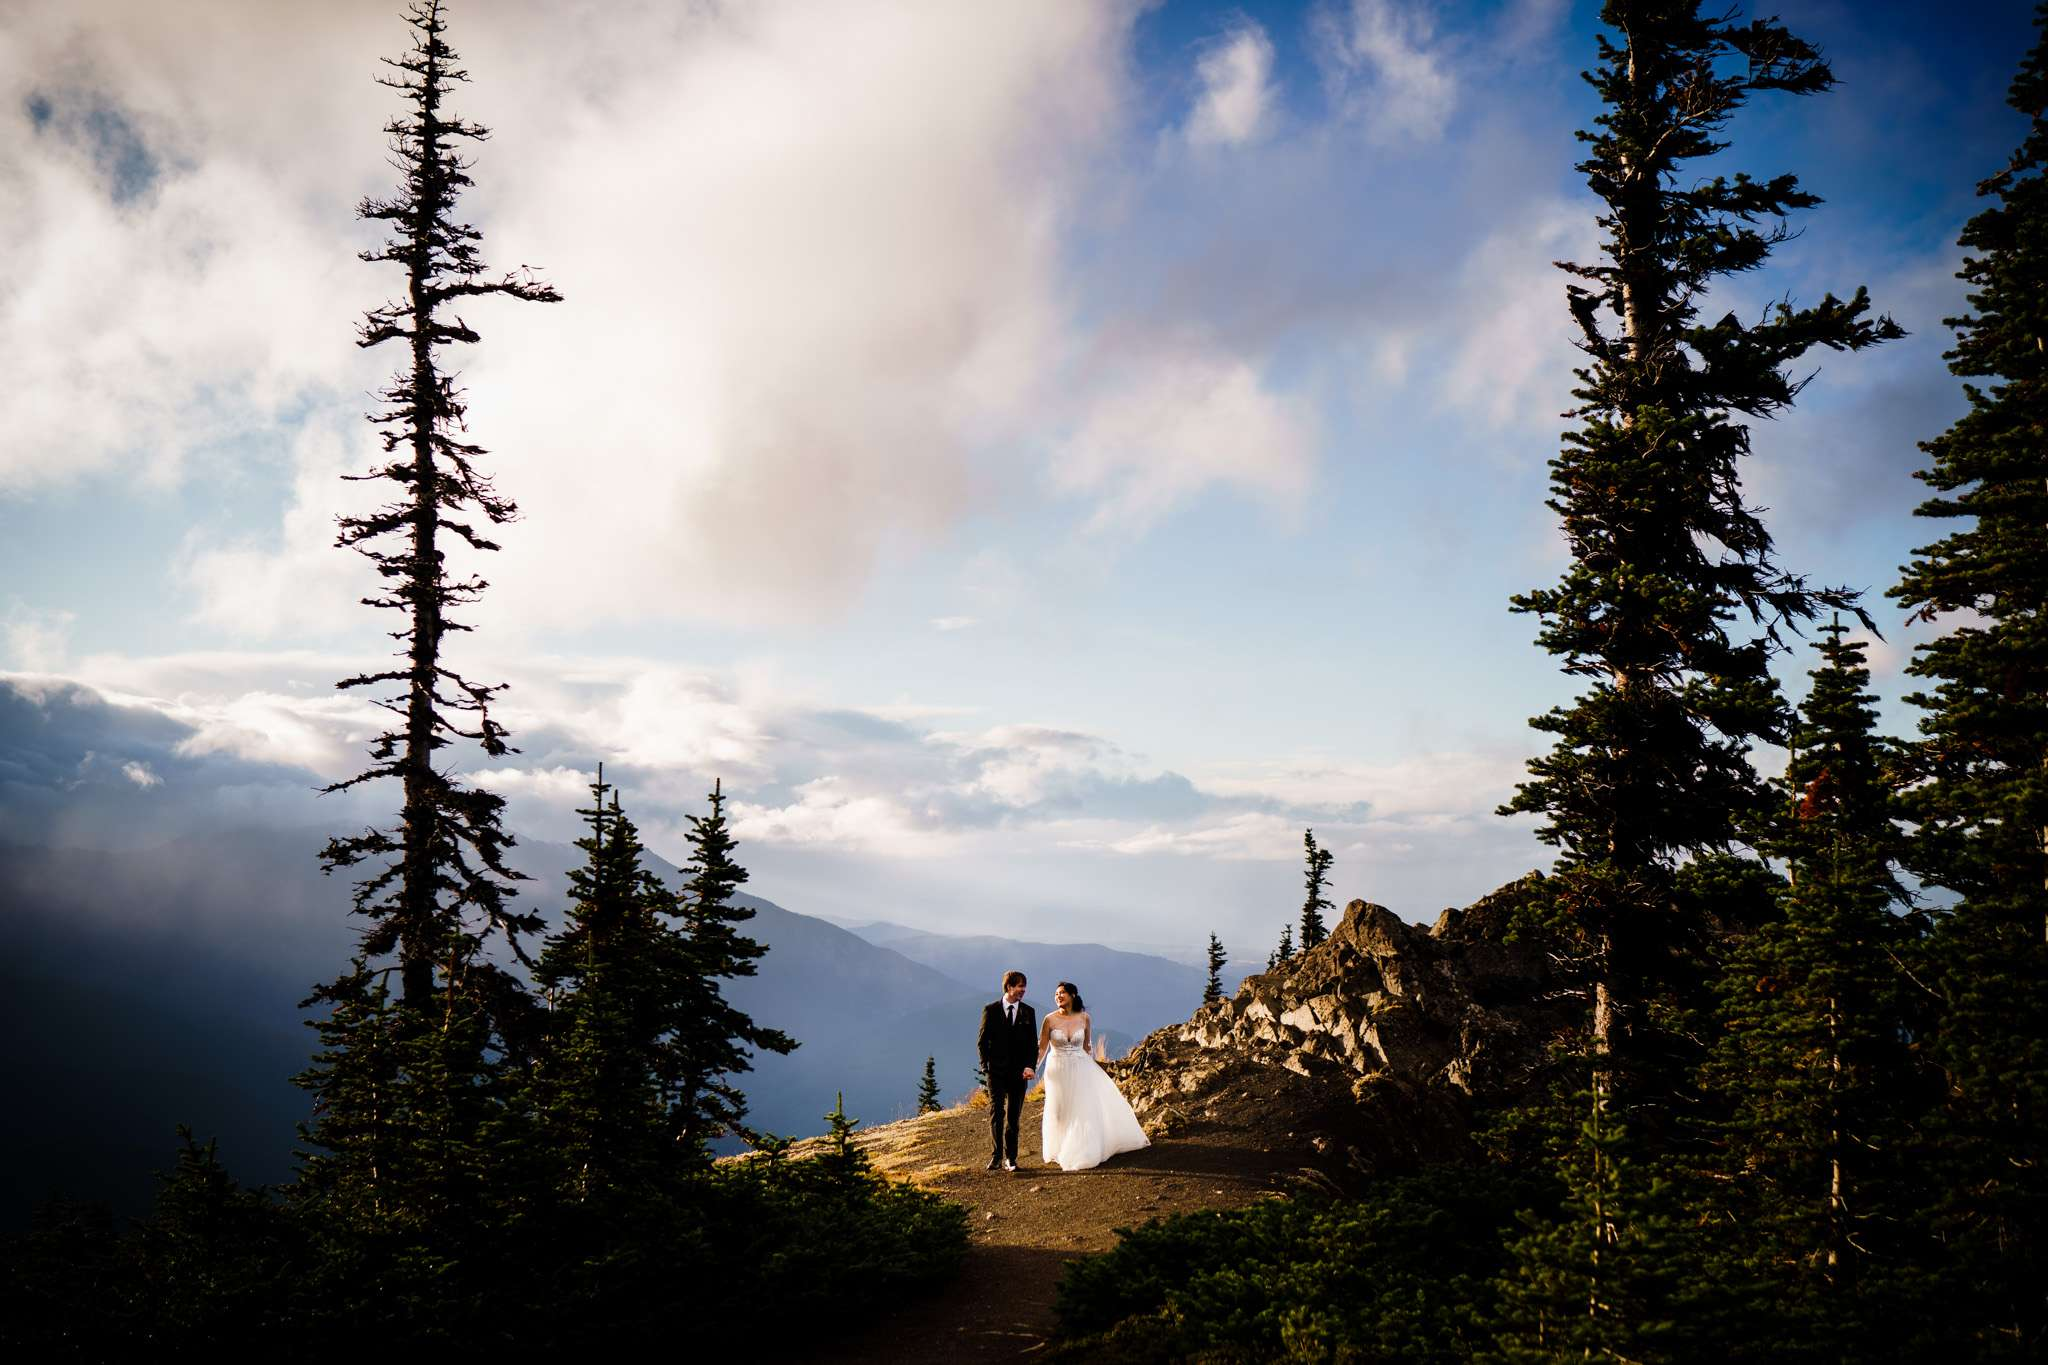 A bride and groom holds hands on top of a mountain top with cloud-covered mountain peaks at the background